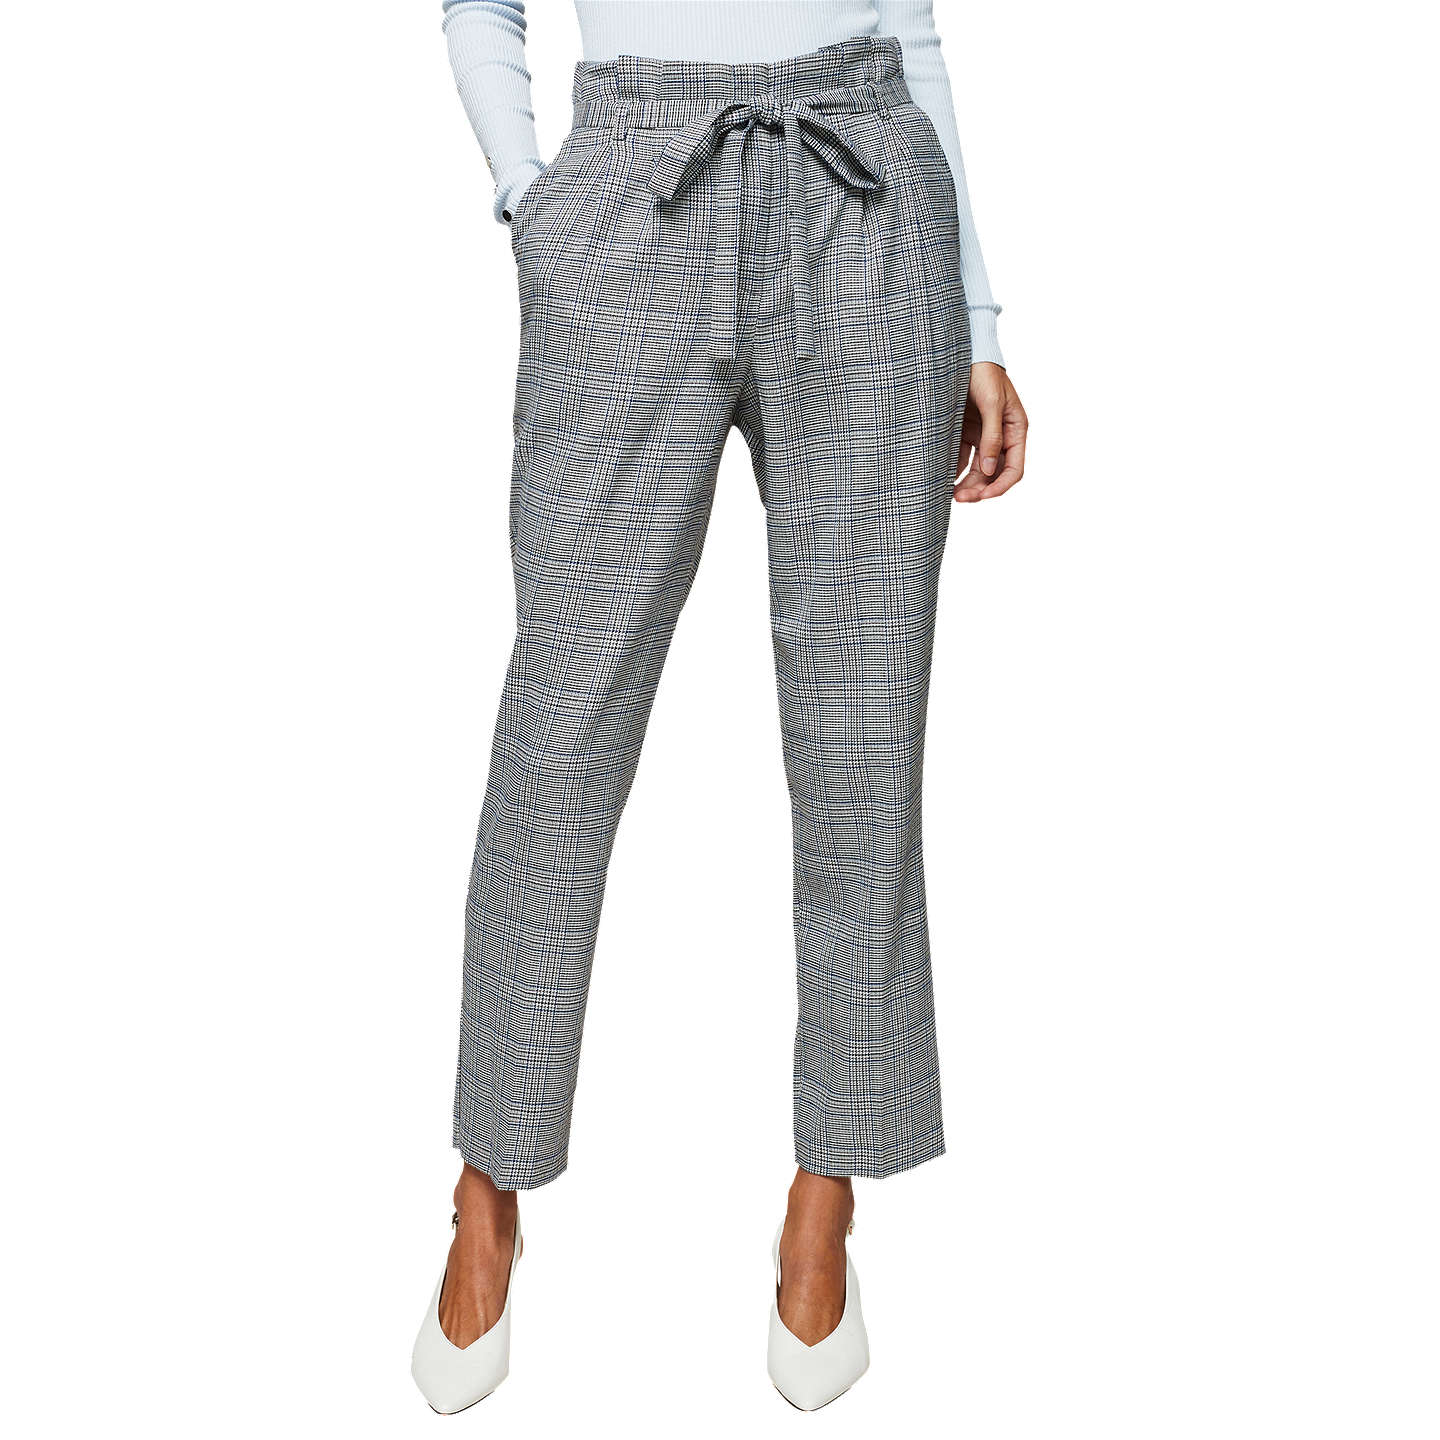 Miss SelfridgePAPERBAG TROUSER - Trousers - blue AWFQxih5Ny